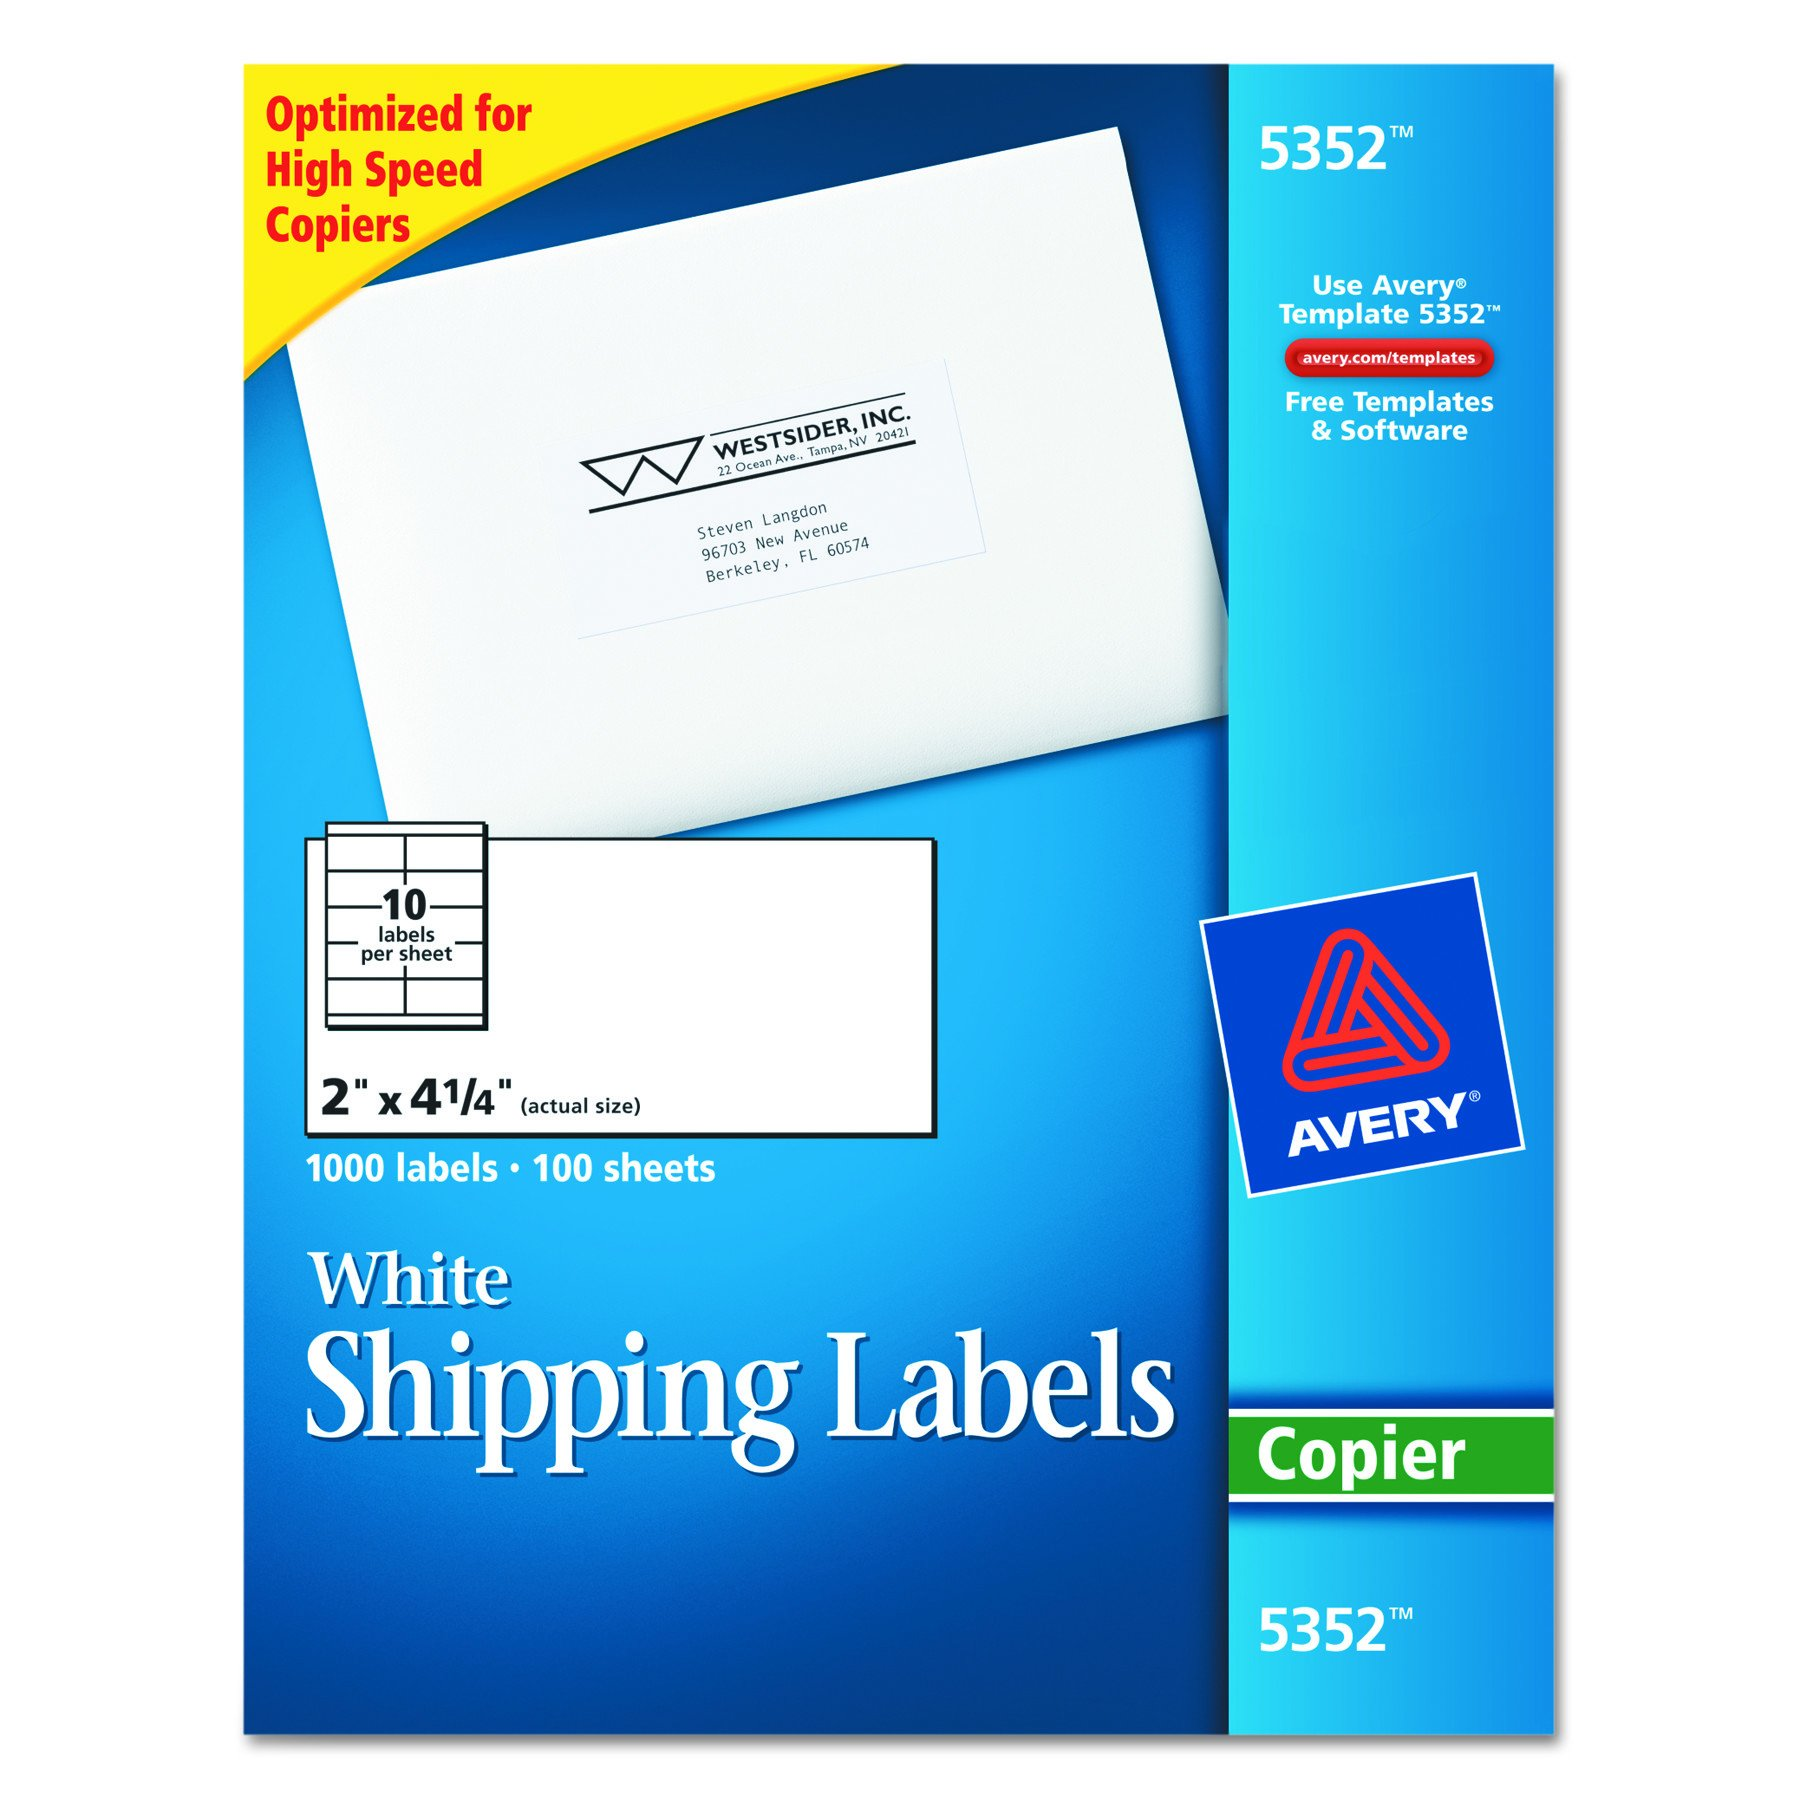 Avery Address Labels For Copiers 2 X 4 14 Box Of 1000 5352